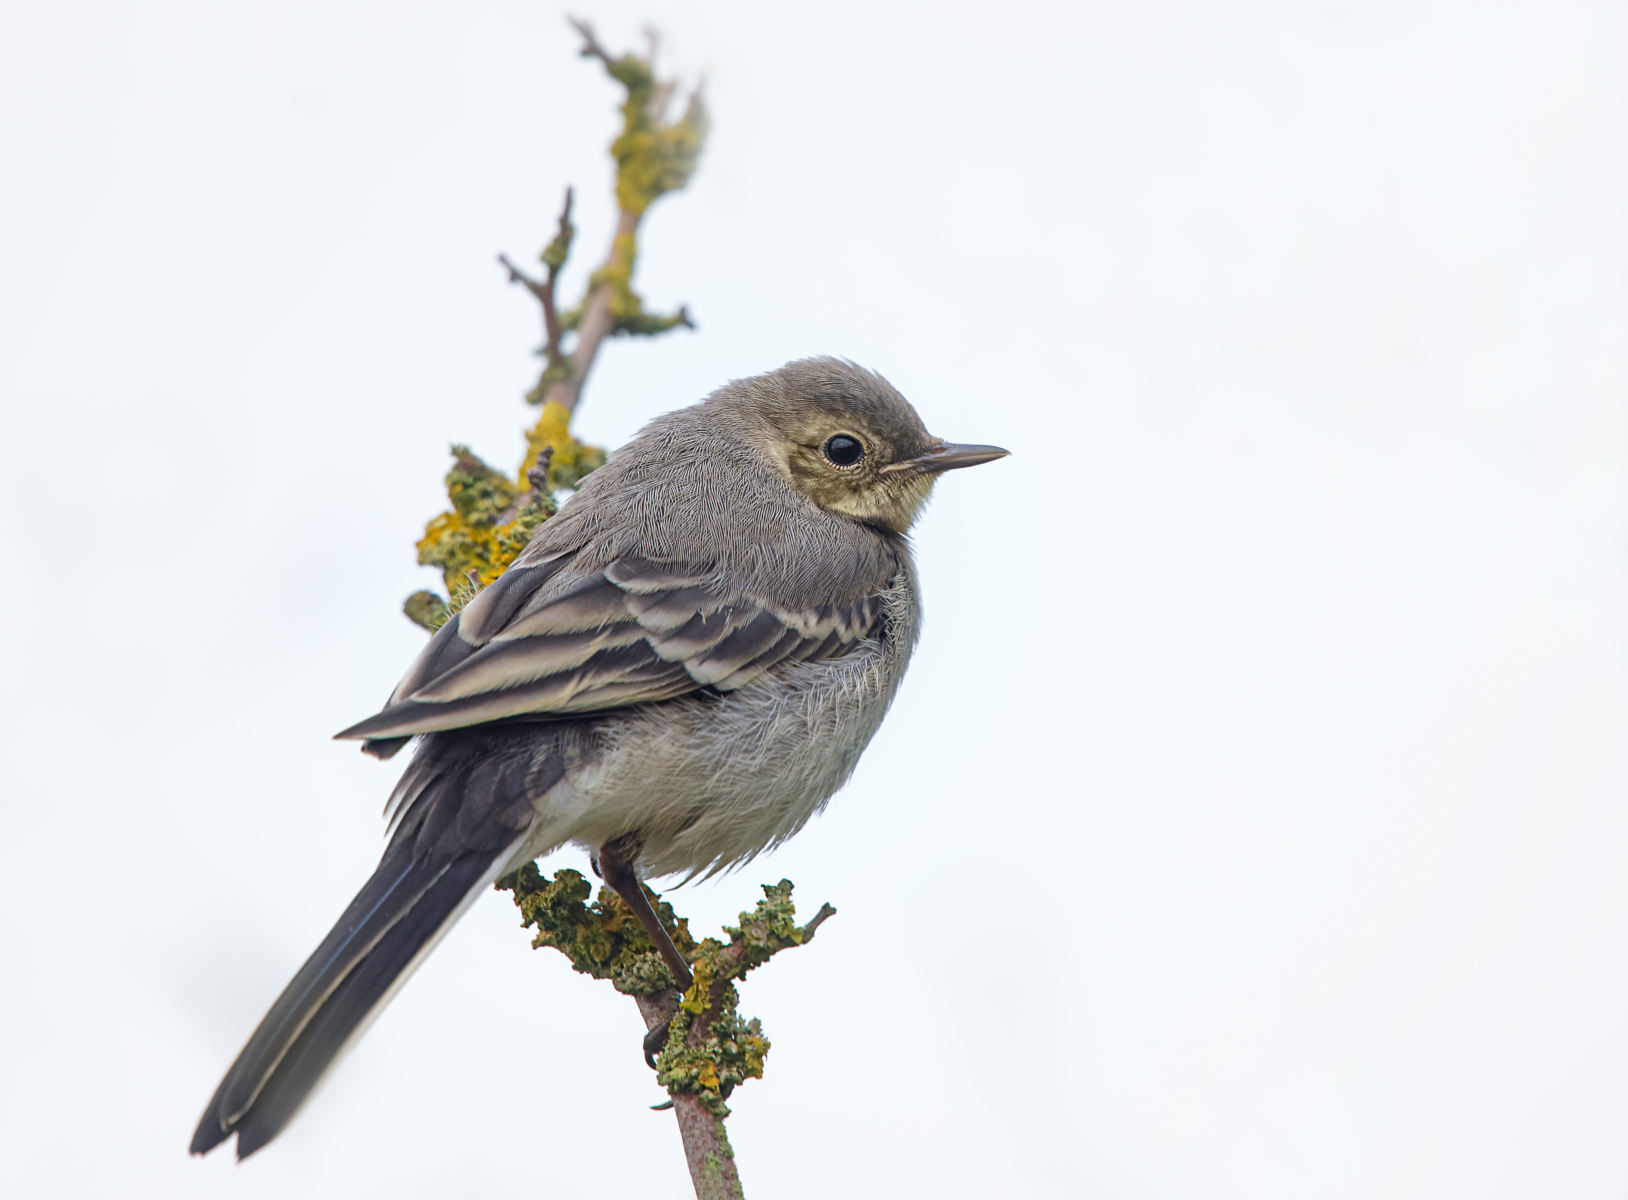 white wagtail juvenile on lichen covered branch